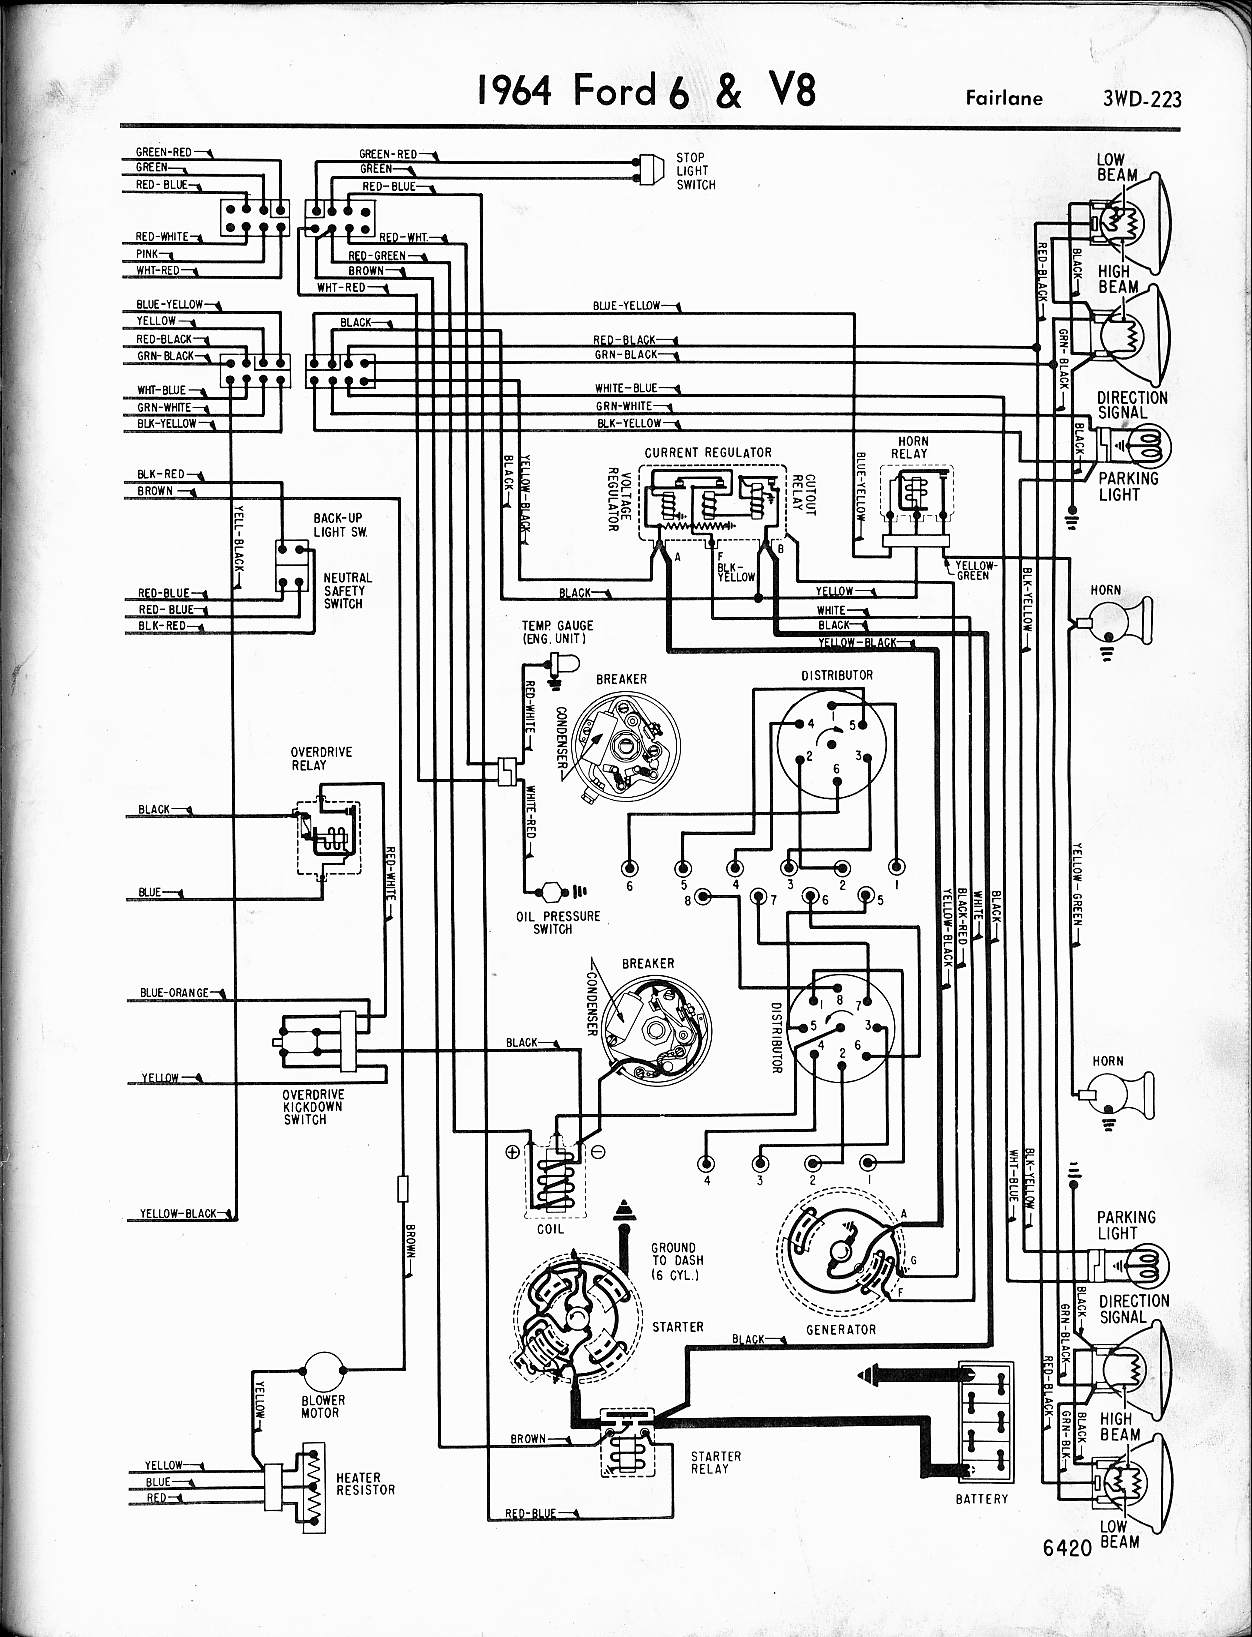 MWire5765 223 1964 1966 thunderbirfd wiring schematic 66 mustang wiring diagram 1964 Ford Fairlane at crackthecode.co